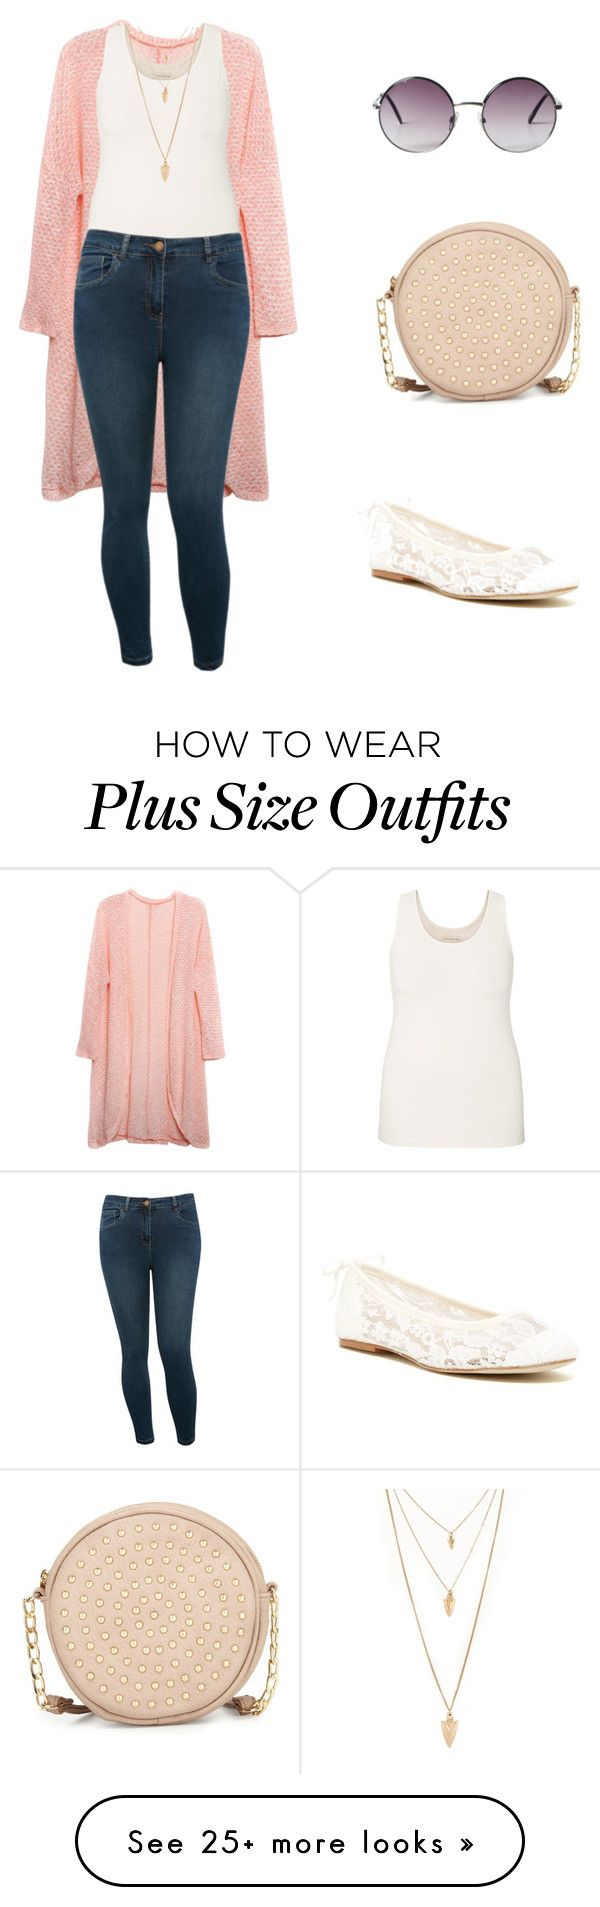 """Plus size casual wear"" by naijareyes on Polyvore featuring Relaxfeel, maurices, M&Co, Soludos, Monki, Forever 21 and Neiman Marcus"